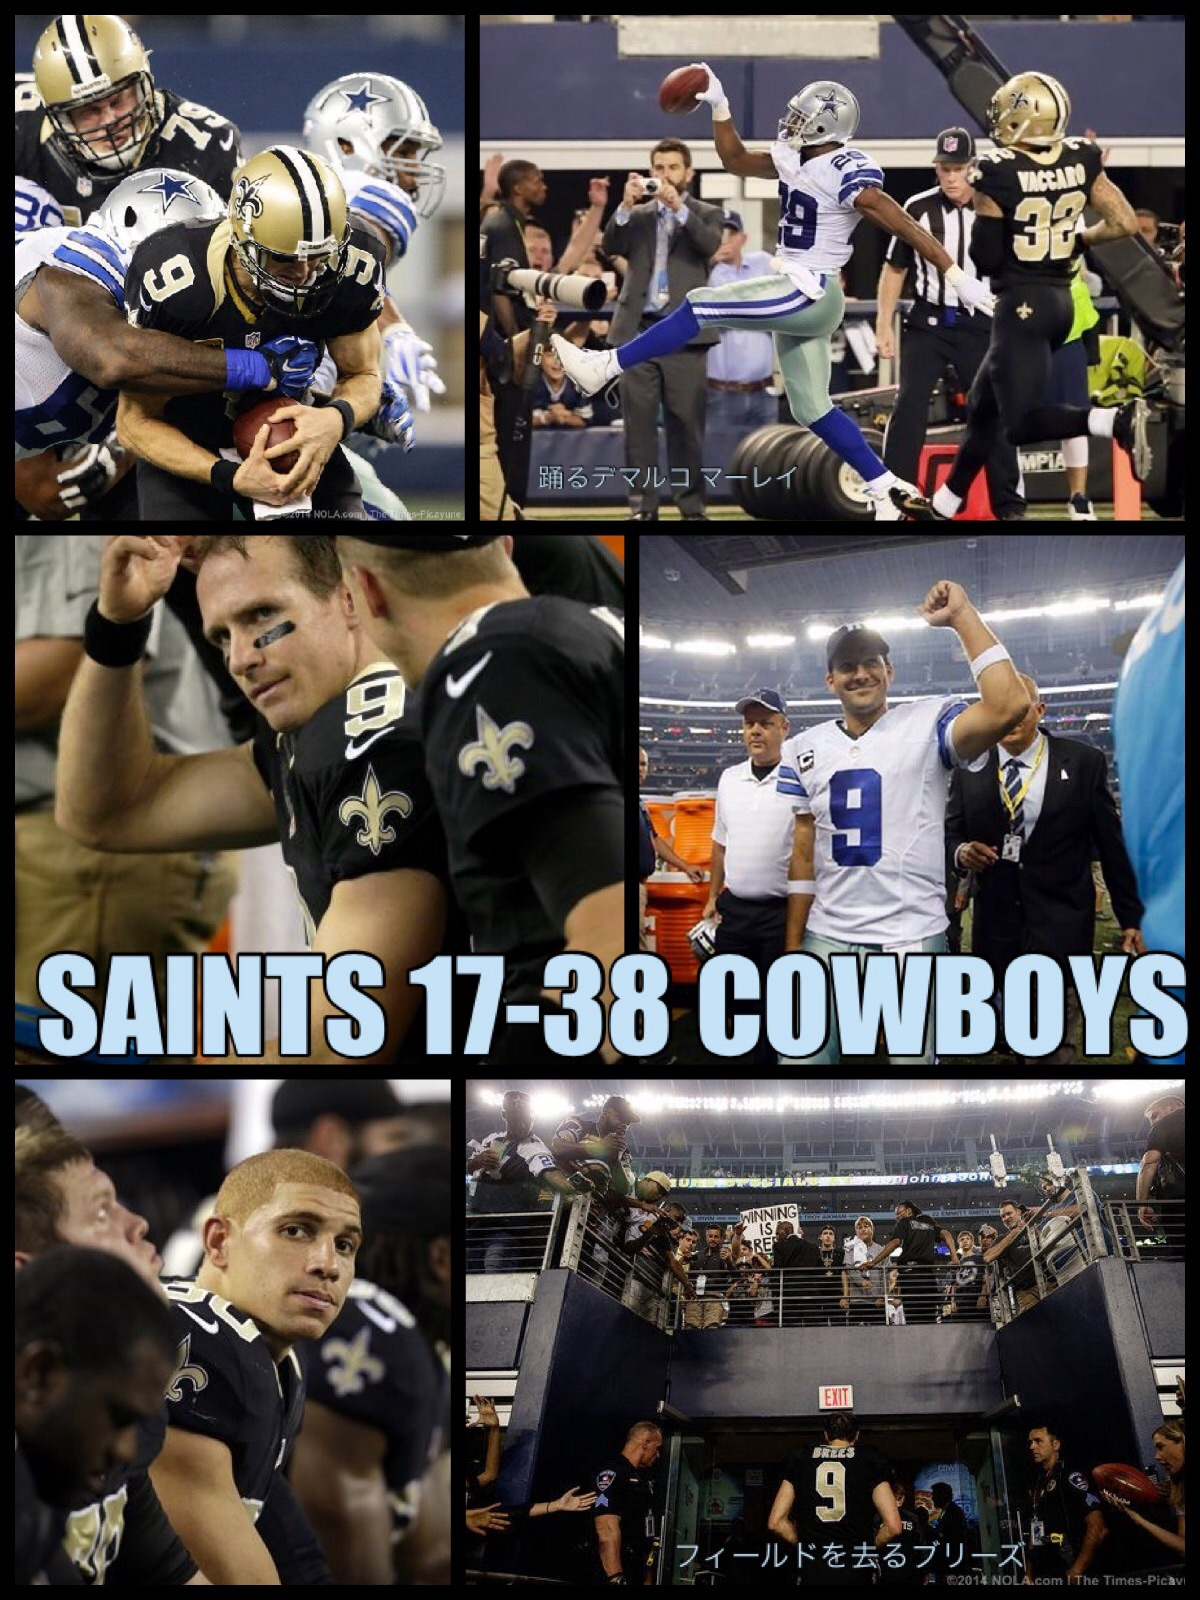 Saints vs Cowboys 2014